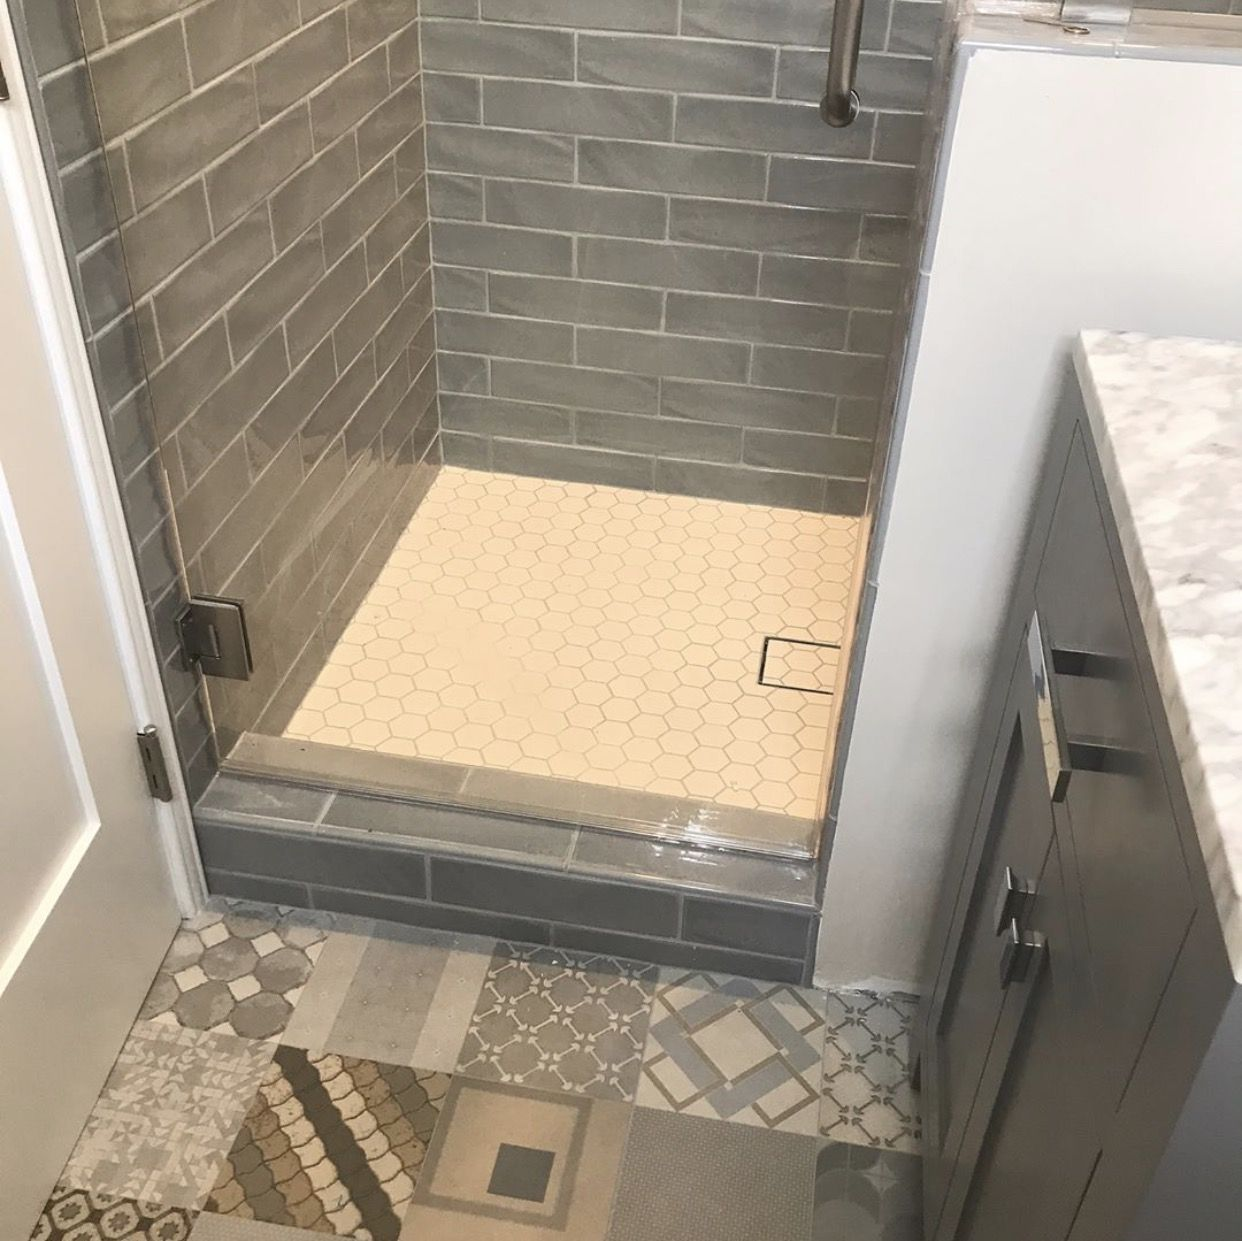 Siena village mix blue 24x24 Longurno shower floor 2x2 hex Shower ...